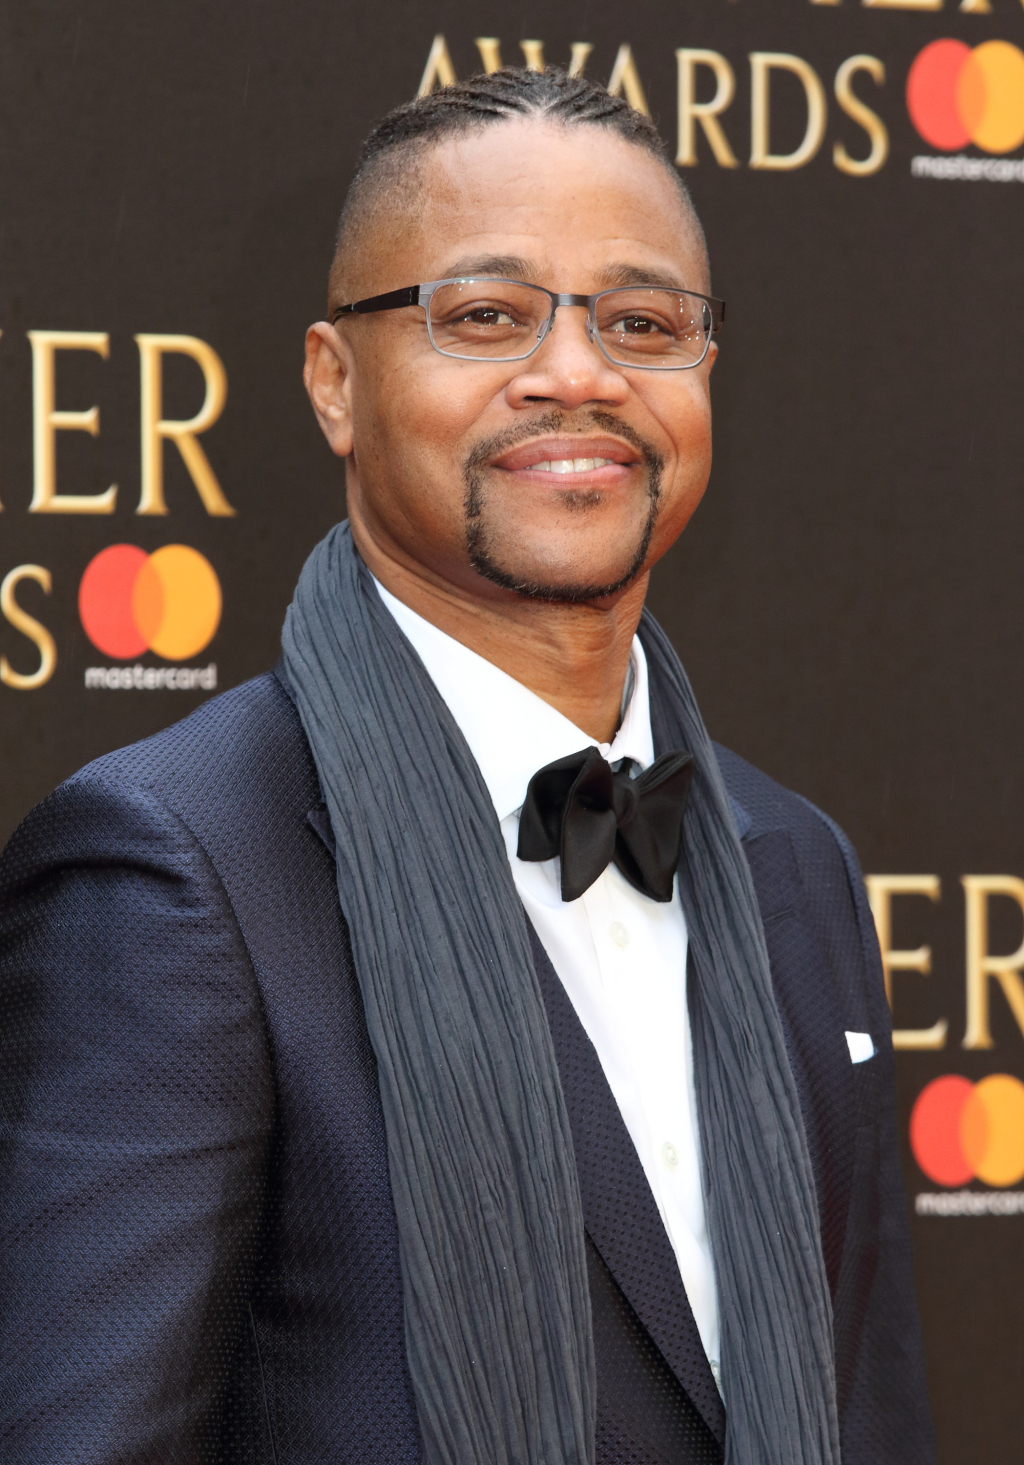 cuba-gooding-jr-pr-photos.jpg